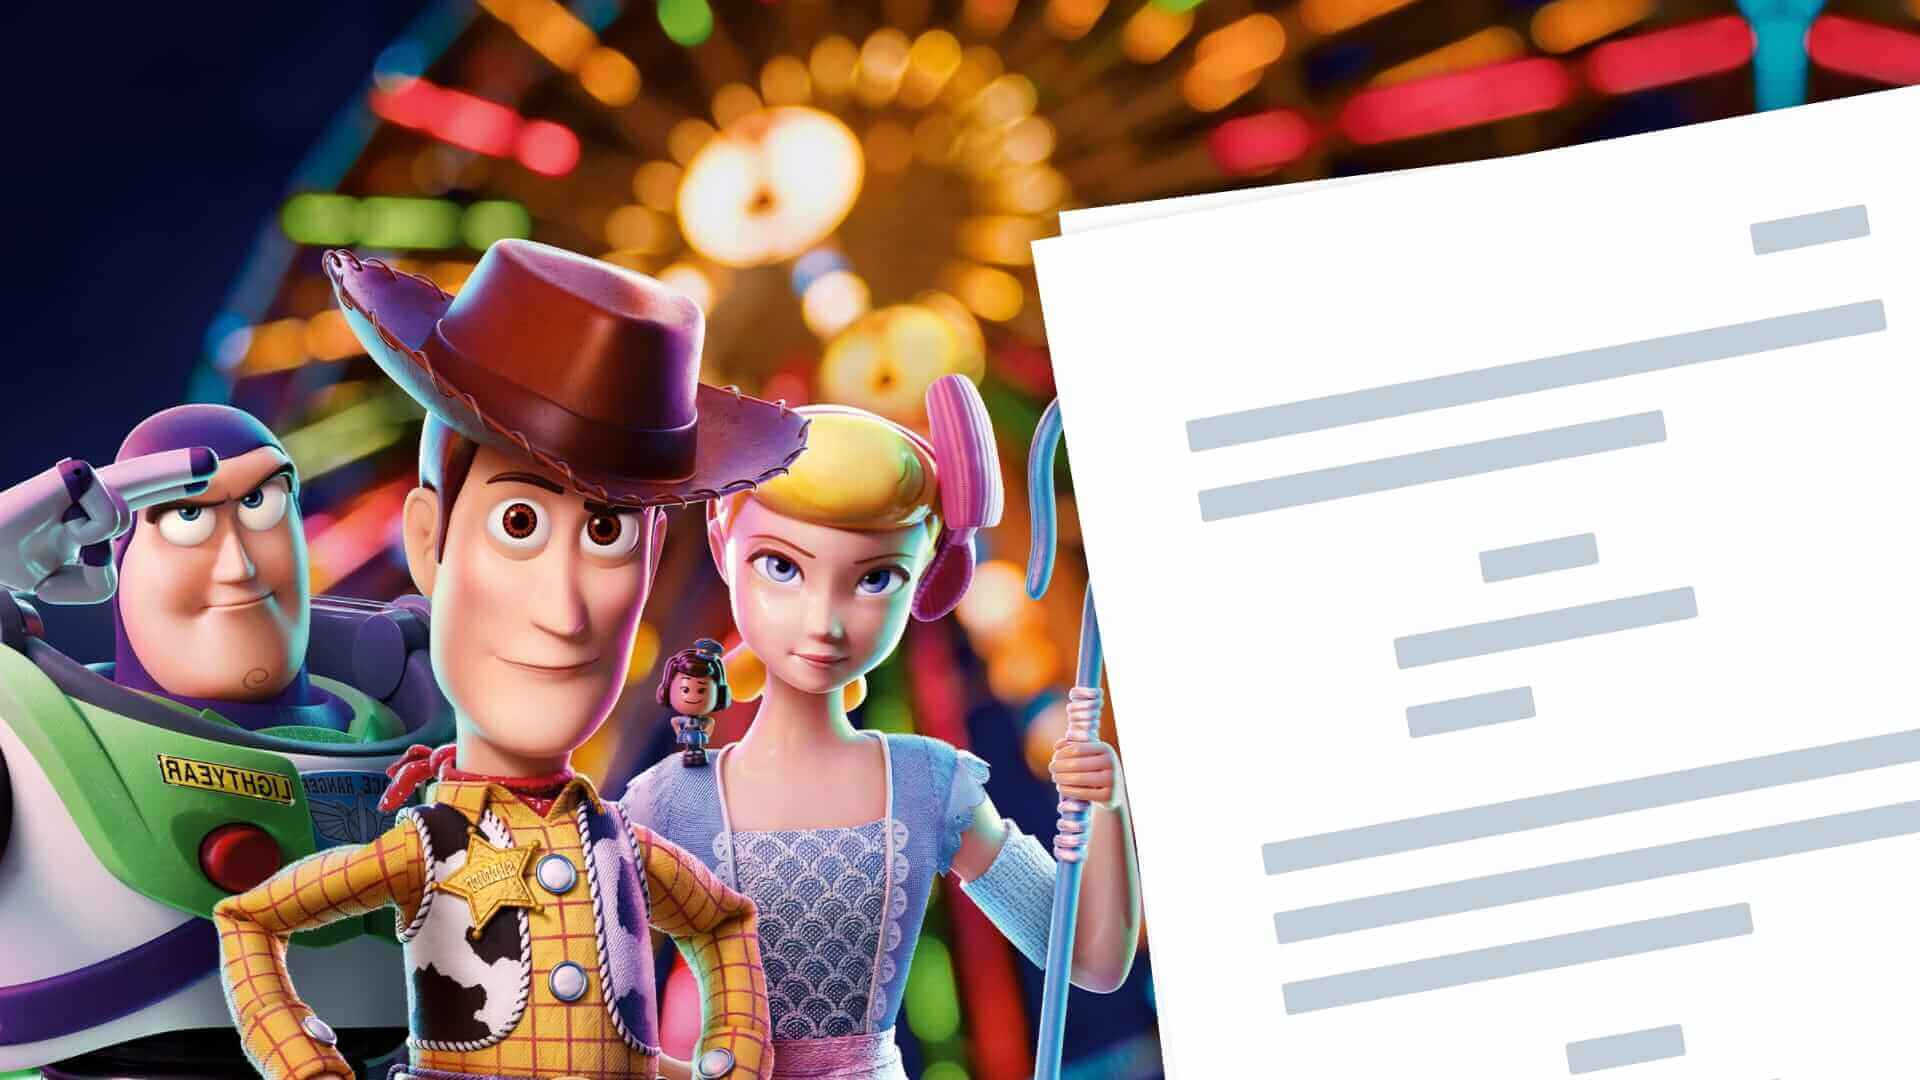 Toy Story 4 Script PDF Download Characters, Quotes, and Ending - Featured